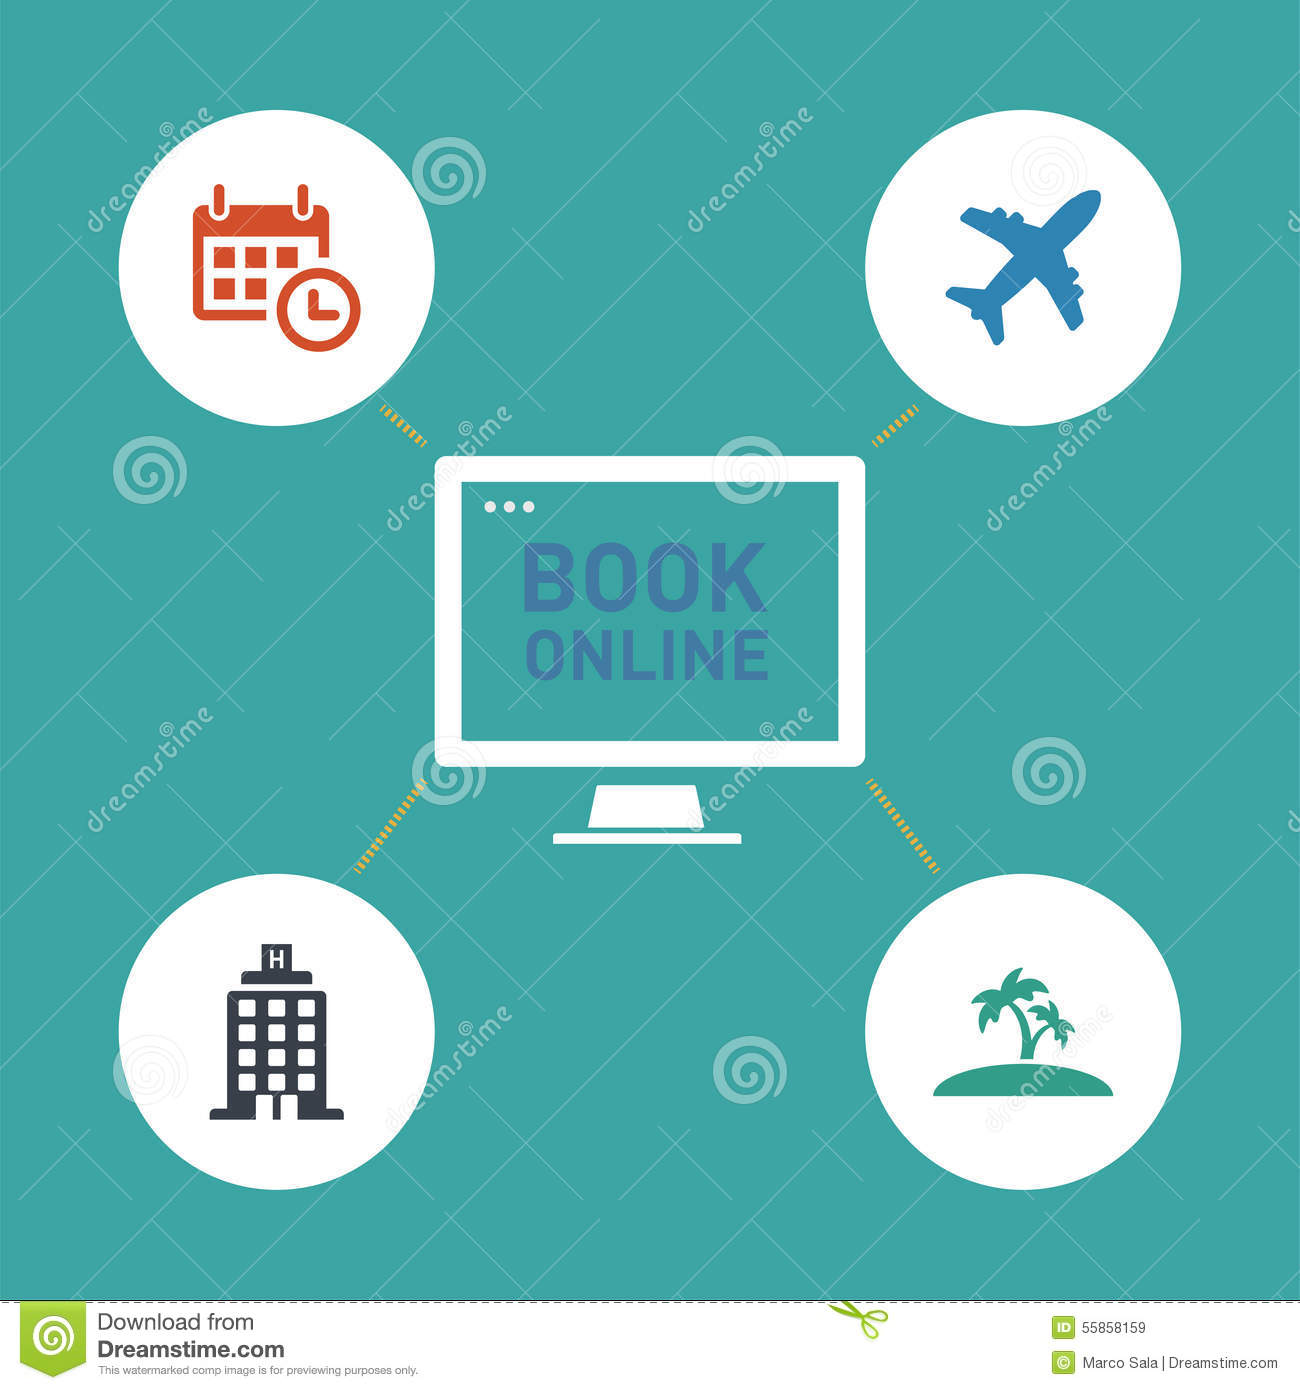 thesis on online reservation philippines Hotelscom is a leading online accommodation site we're passionate about travel every day we inspire and reach millions of travelers across 90 local websites in 41 languages.